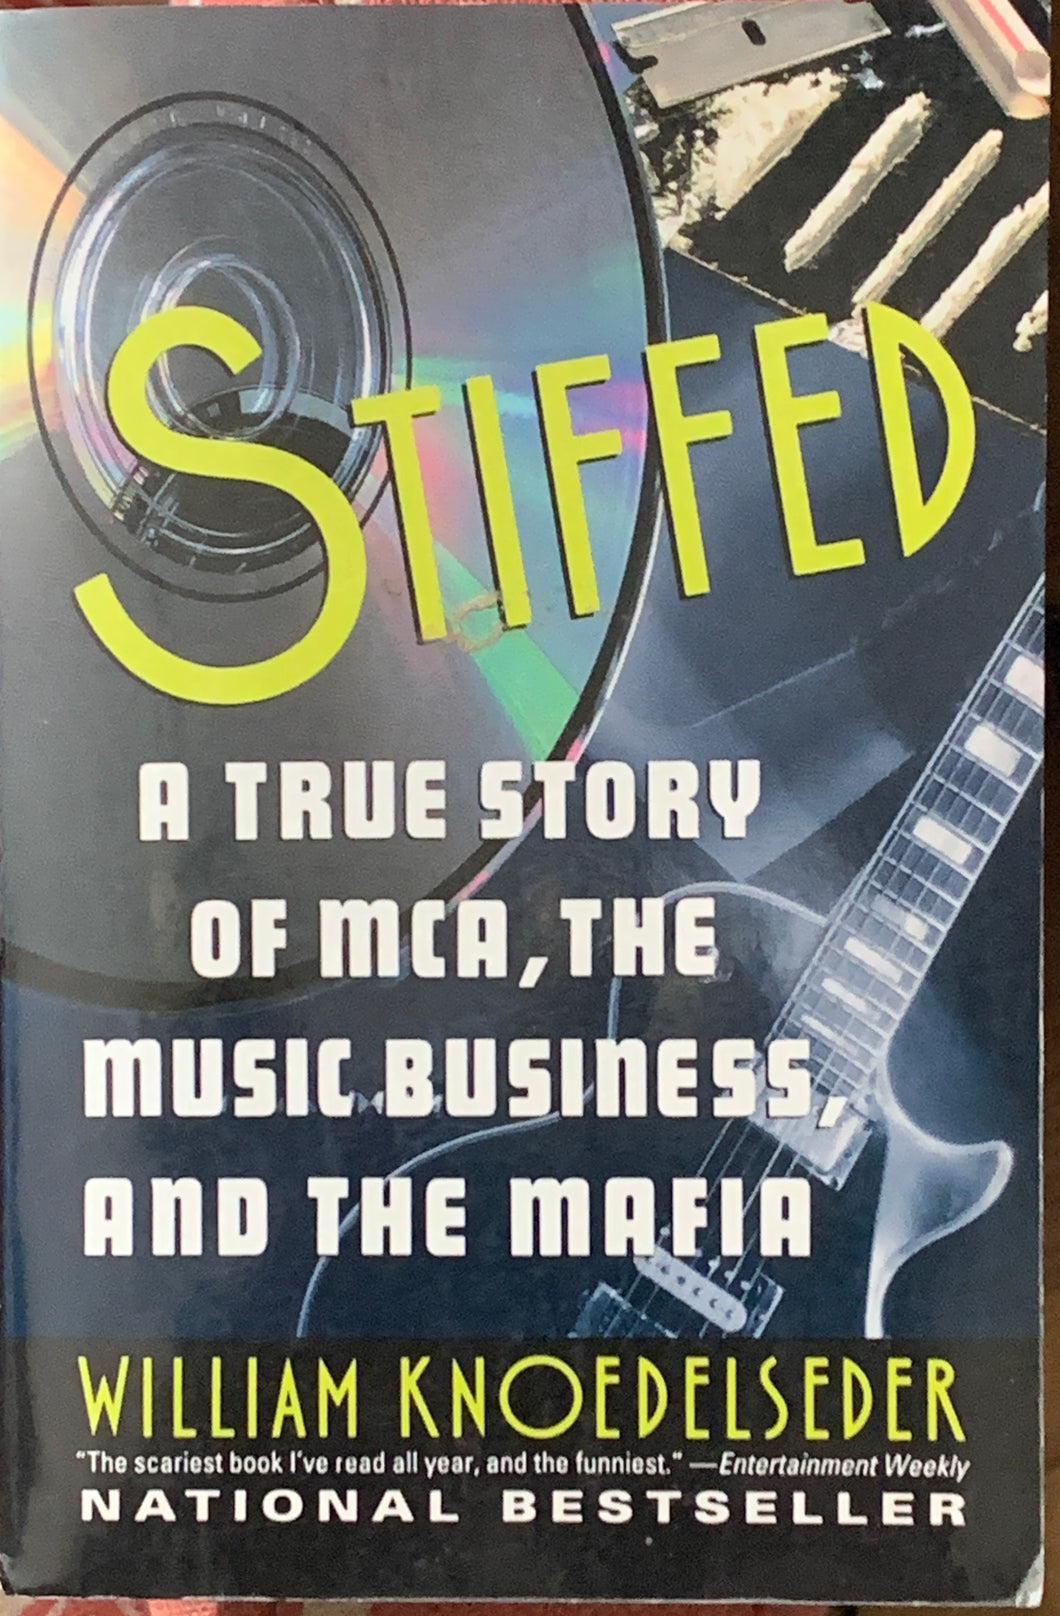 Stiffed: A True Story of MCA, the Music Business, and the Mafia (Paperback)